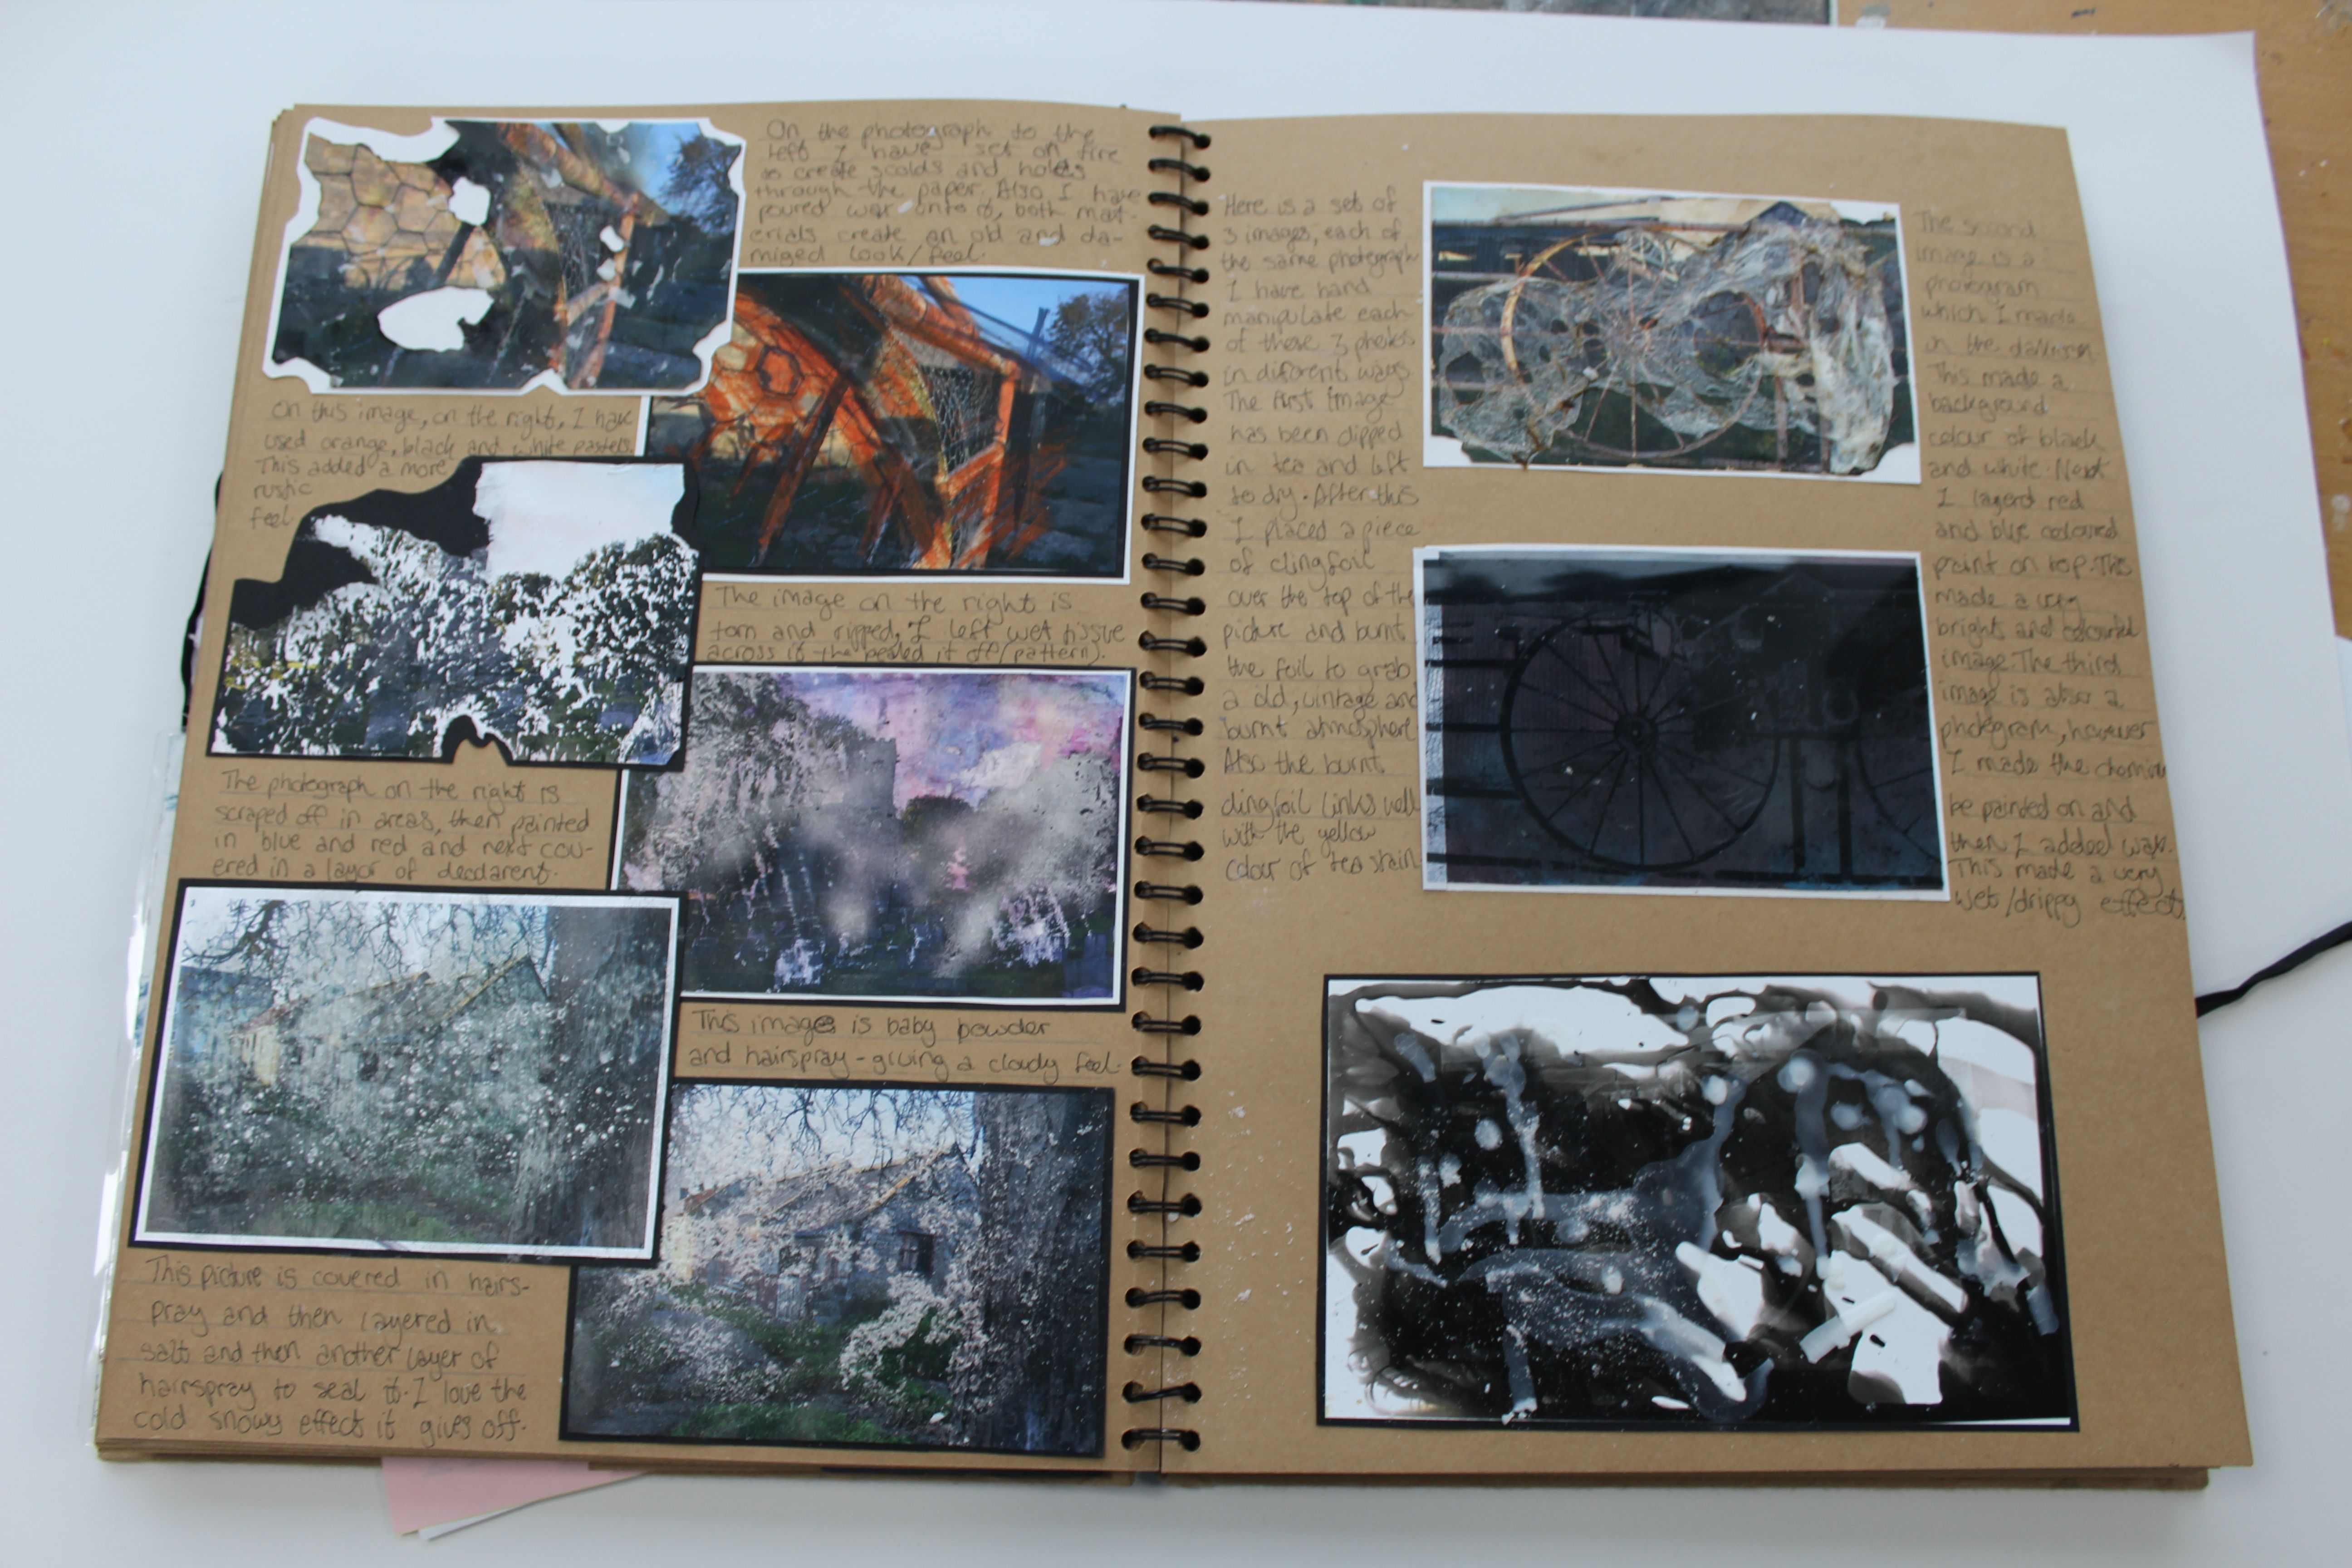 A2 Fine Art A3 Brown Sketchbook Hand Manipulations Esa Truth Fantasy Or Fiction Thomas Rotherham Col Photography Sketchbook Sketch Book Sketchbook Inspiration